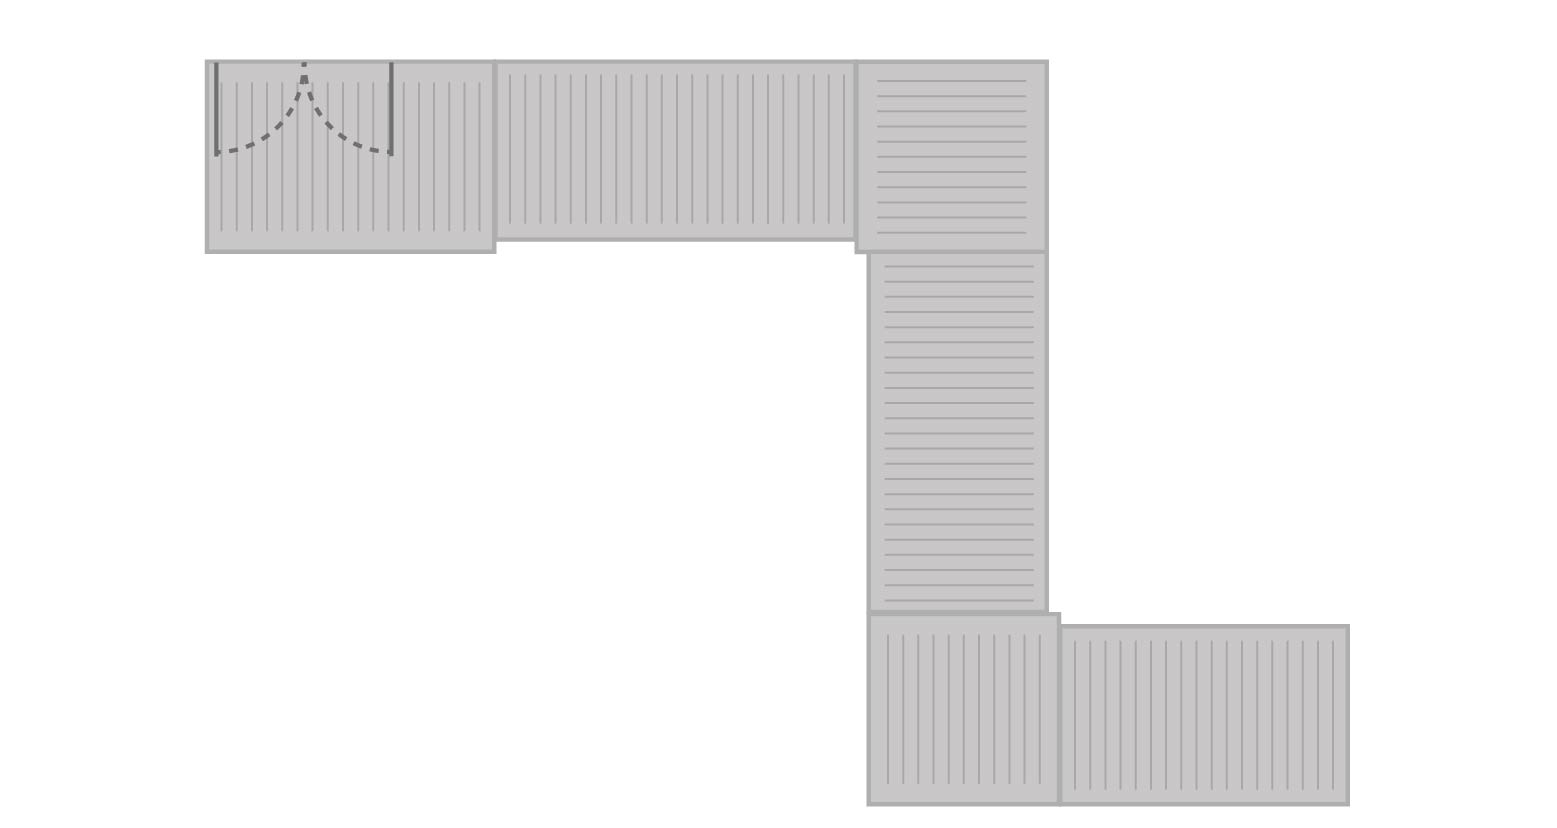 26' aluminum ramp sample configuration illustration